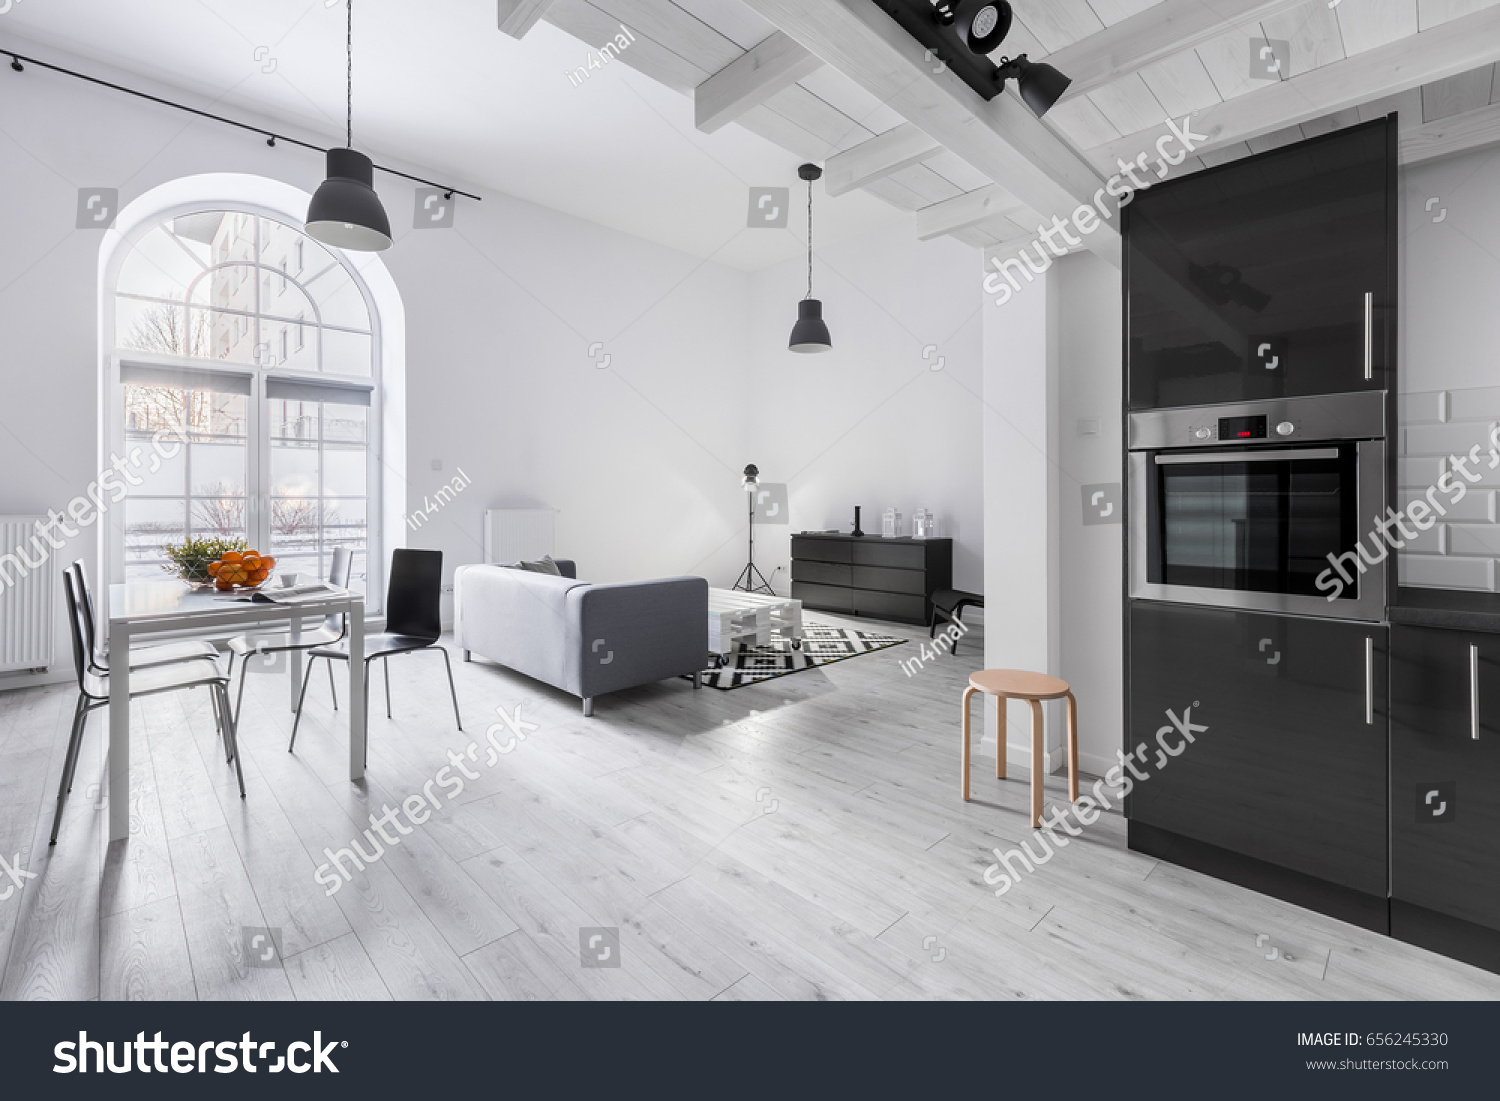 Modern Apartment Industrial Style Kitchen Open Stock Photo (Royalty ...